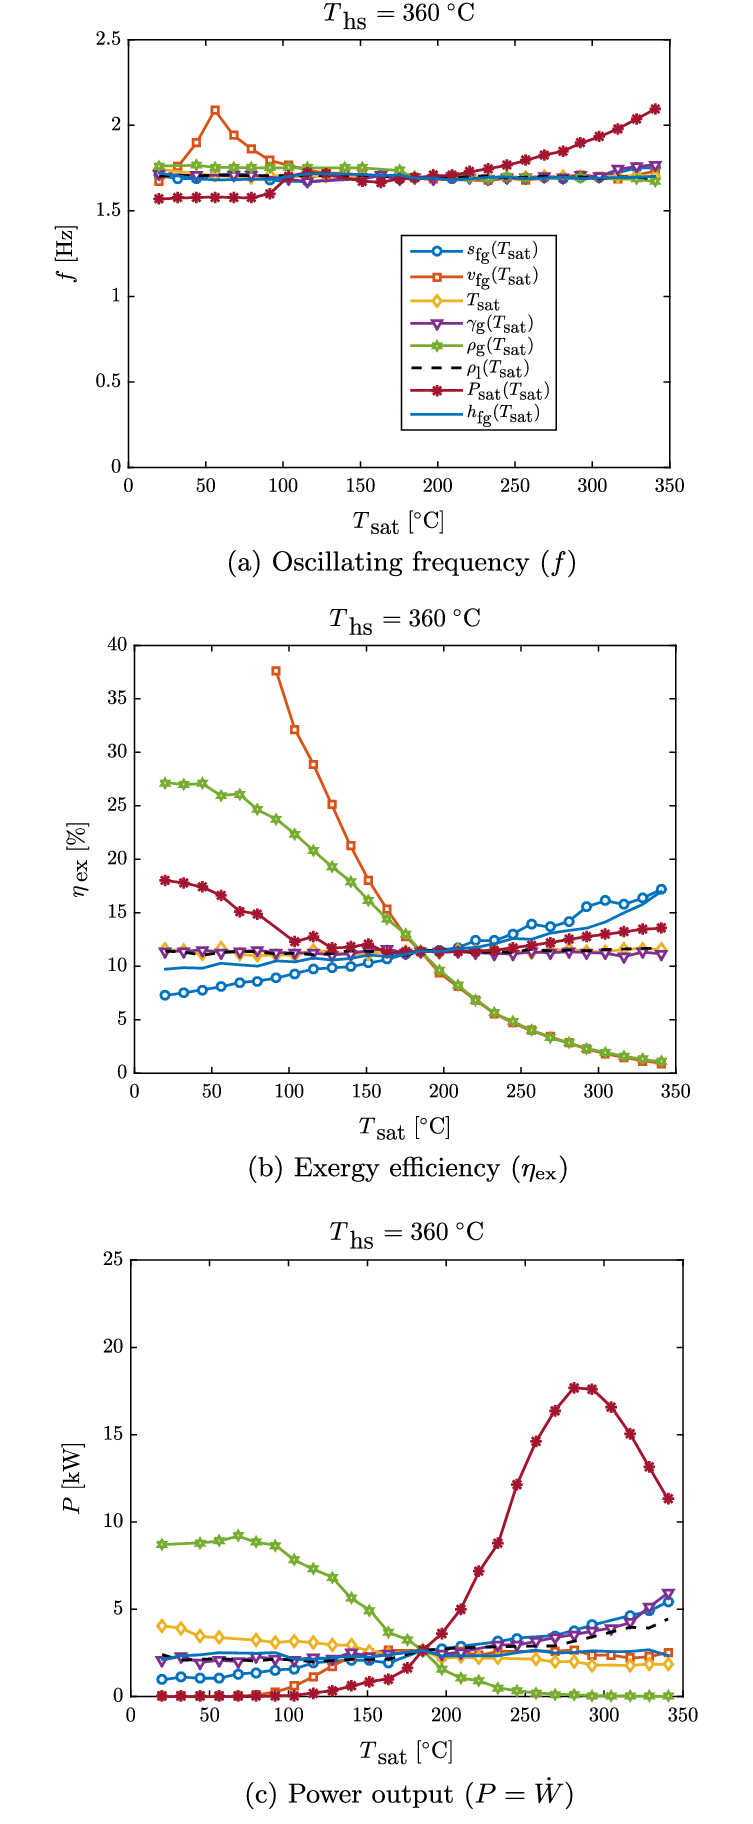 hight resolution of performance indices of the up therm heat engine with water as the working fluid on